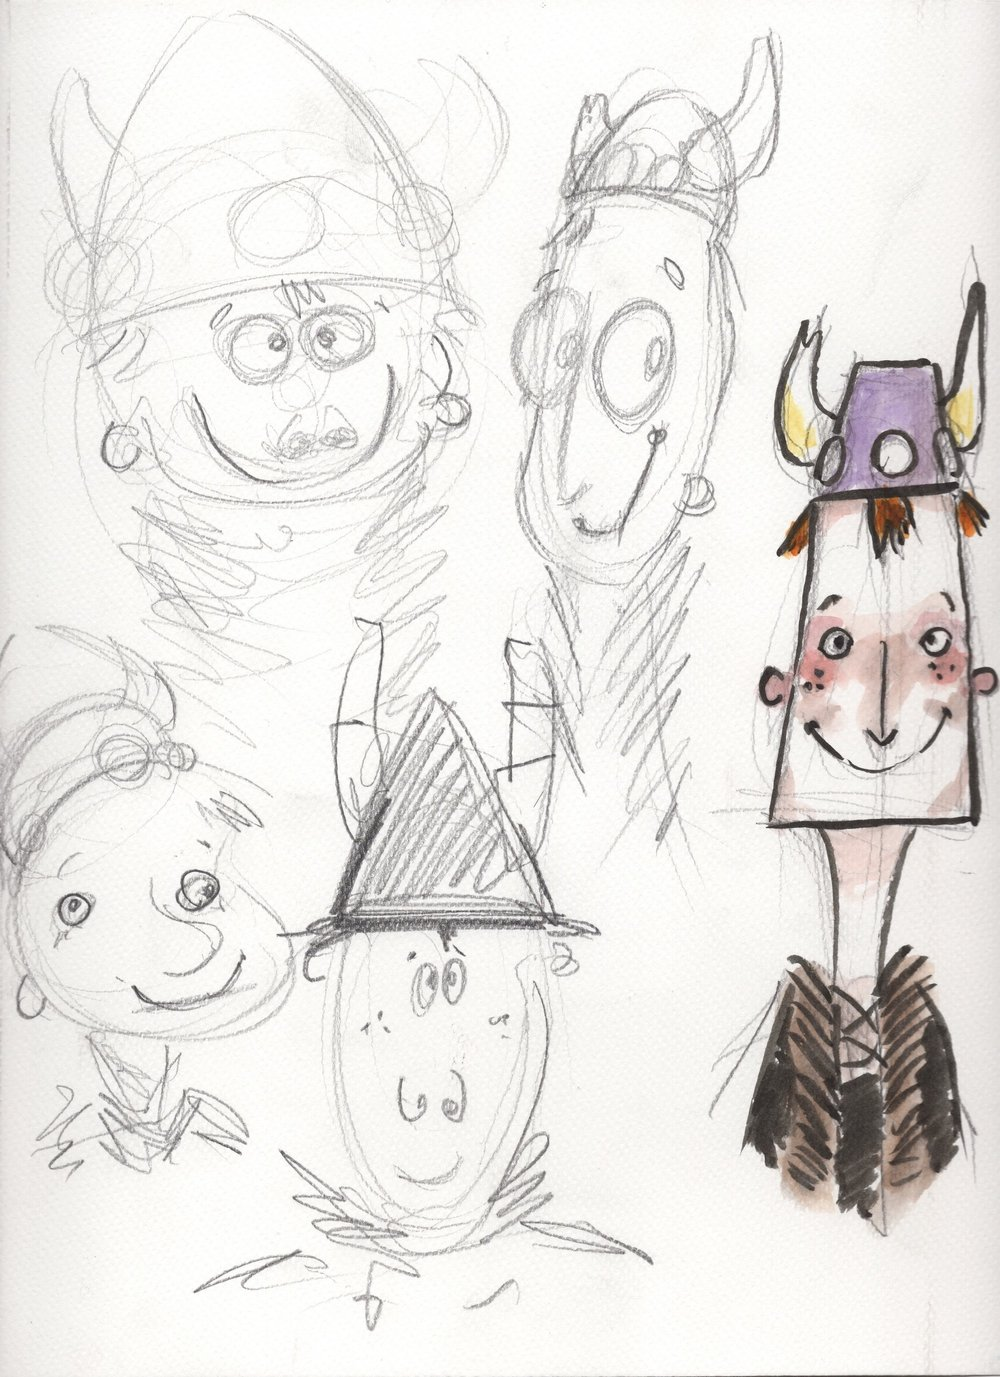 Some early sketchbook designs for an animation project by Joshua Brown